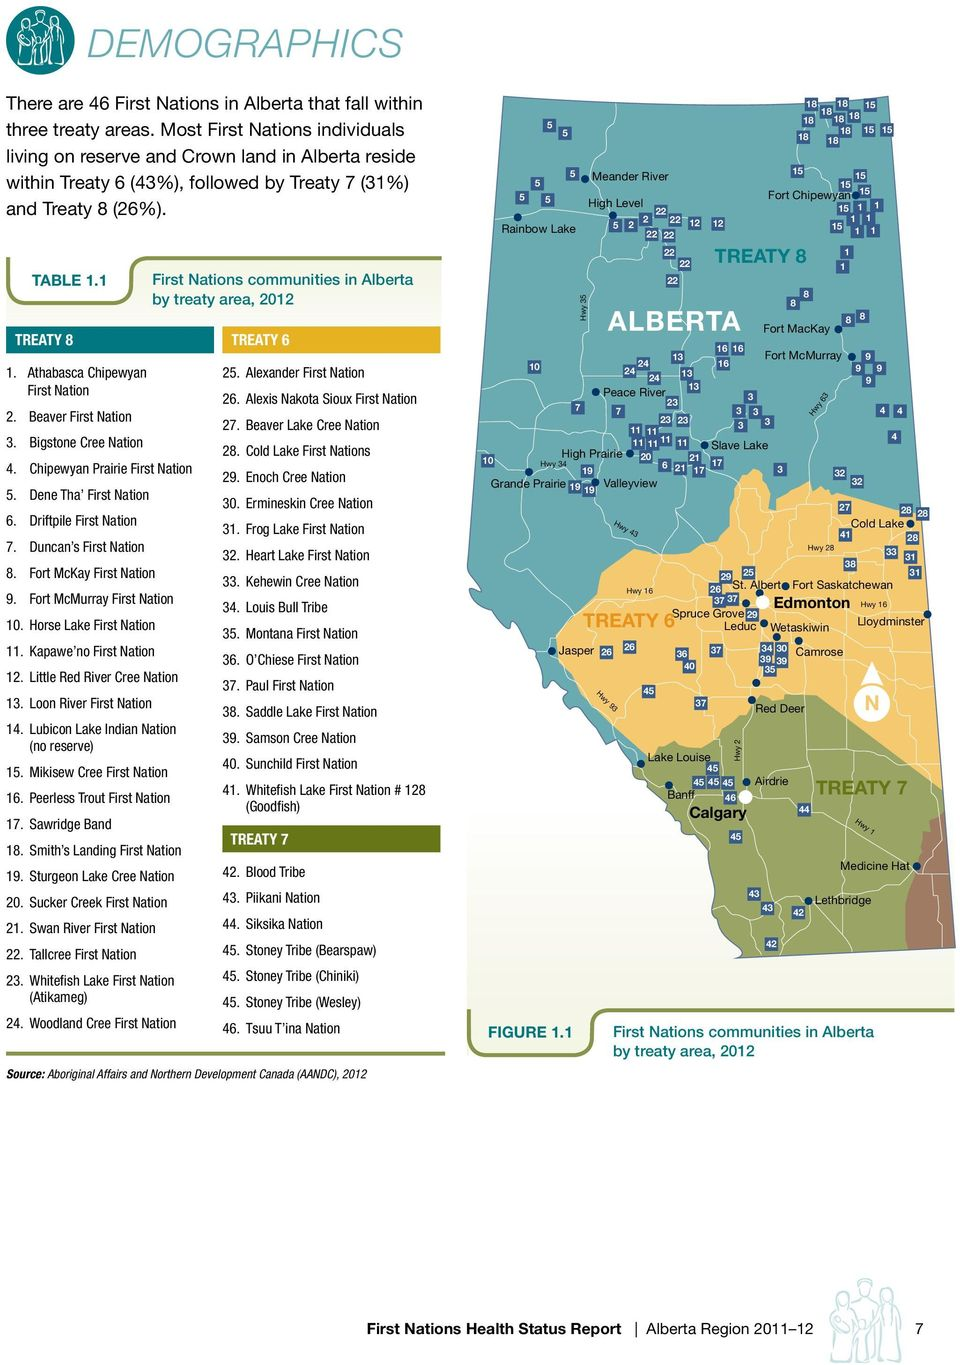 Athabasca Chipewyan First Nation 2. Beaver First Nation 3. Bigstone Cree Nation 4. Chipewyan Prairie First Nation 5. Dene Tha First Nation 6. Driftpile First Nation 7. Duncan s First Nation 8.